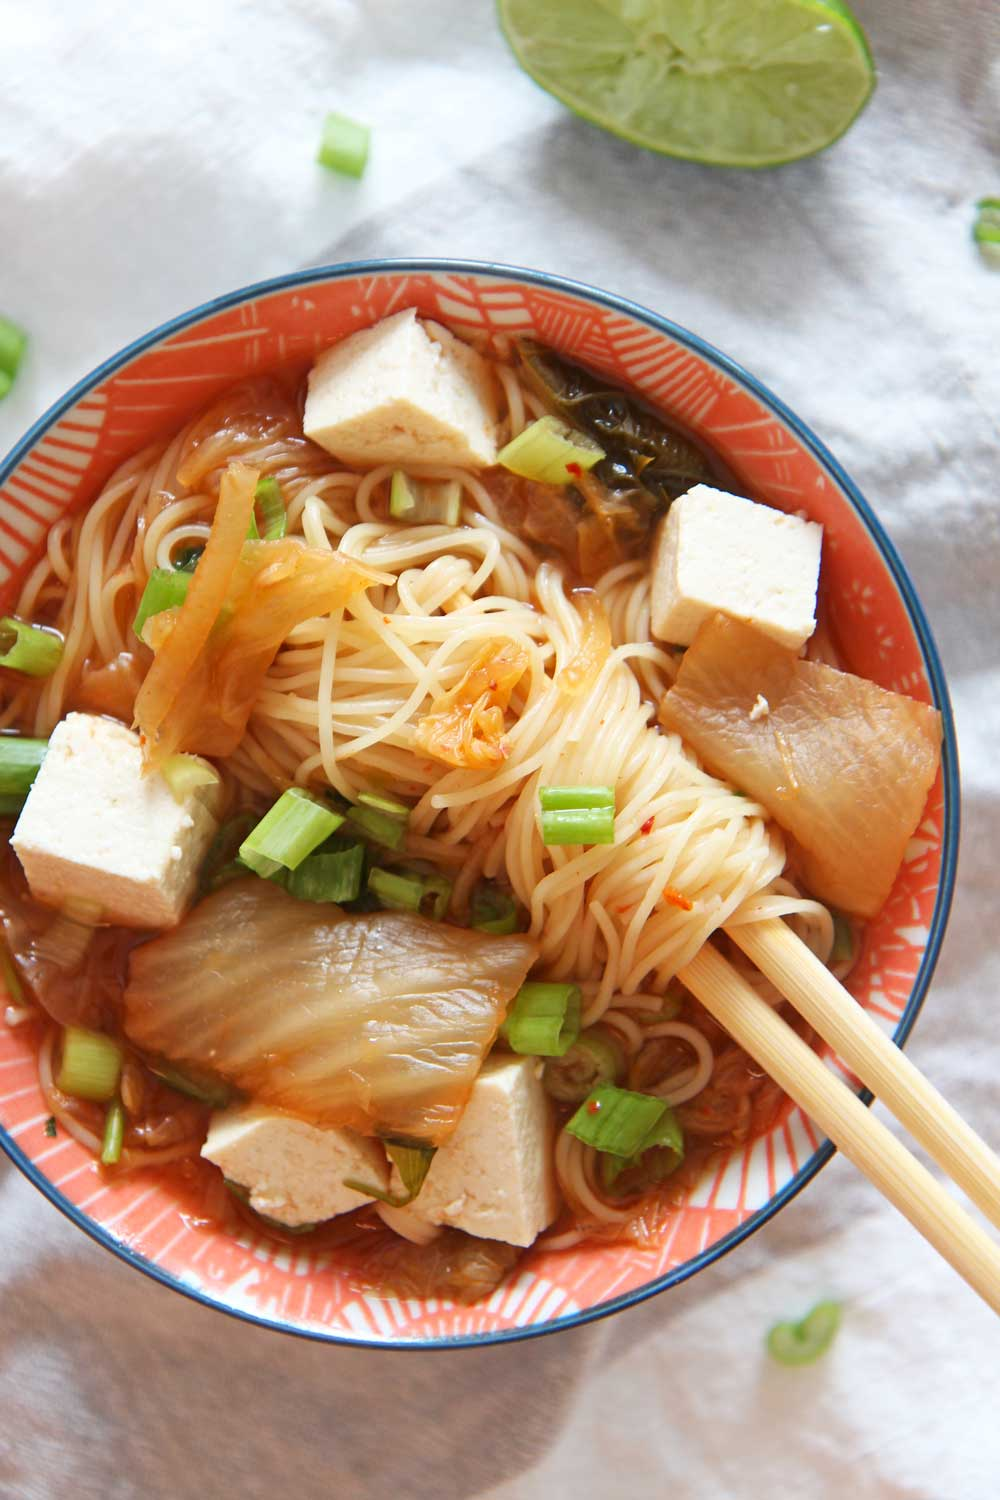 How to Make Kimchi Ramen Soup in a Slow Cooker